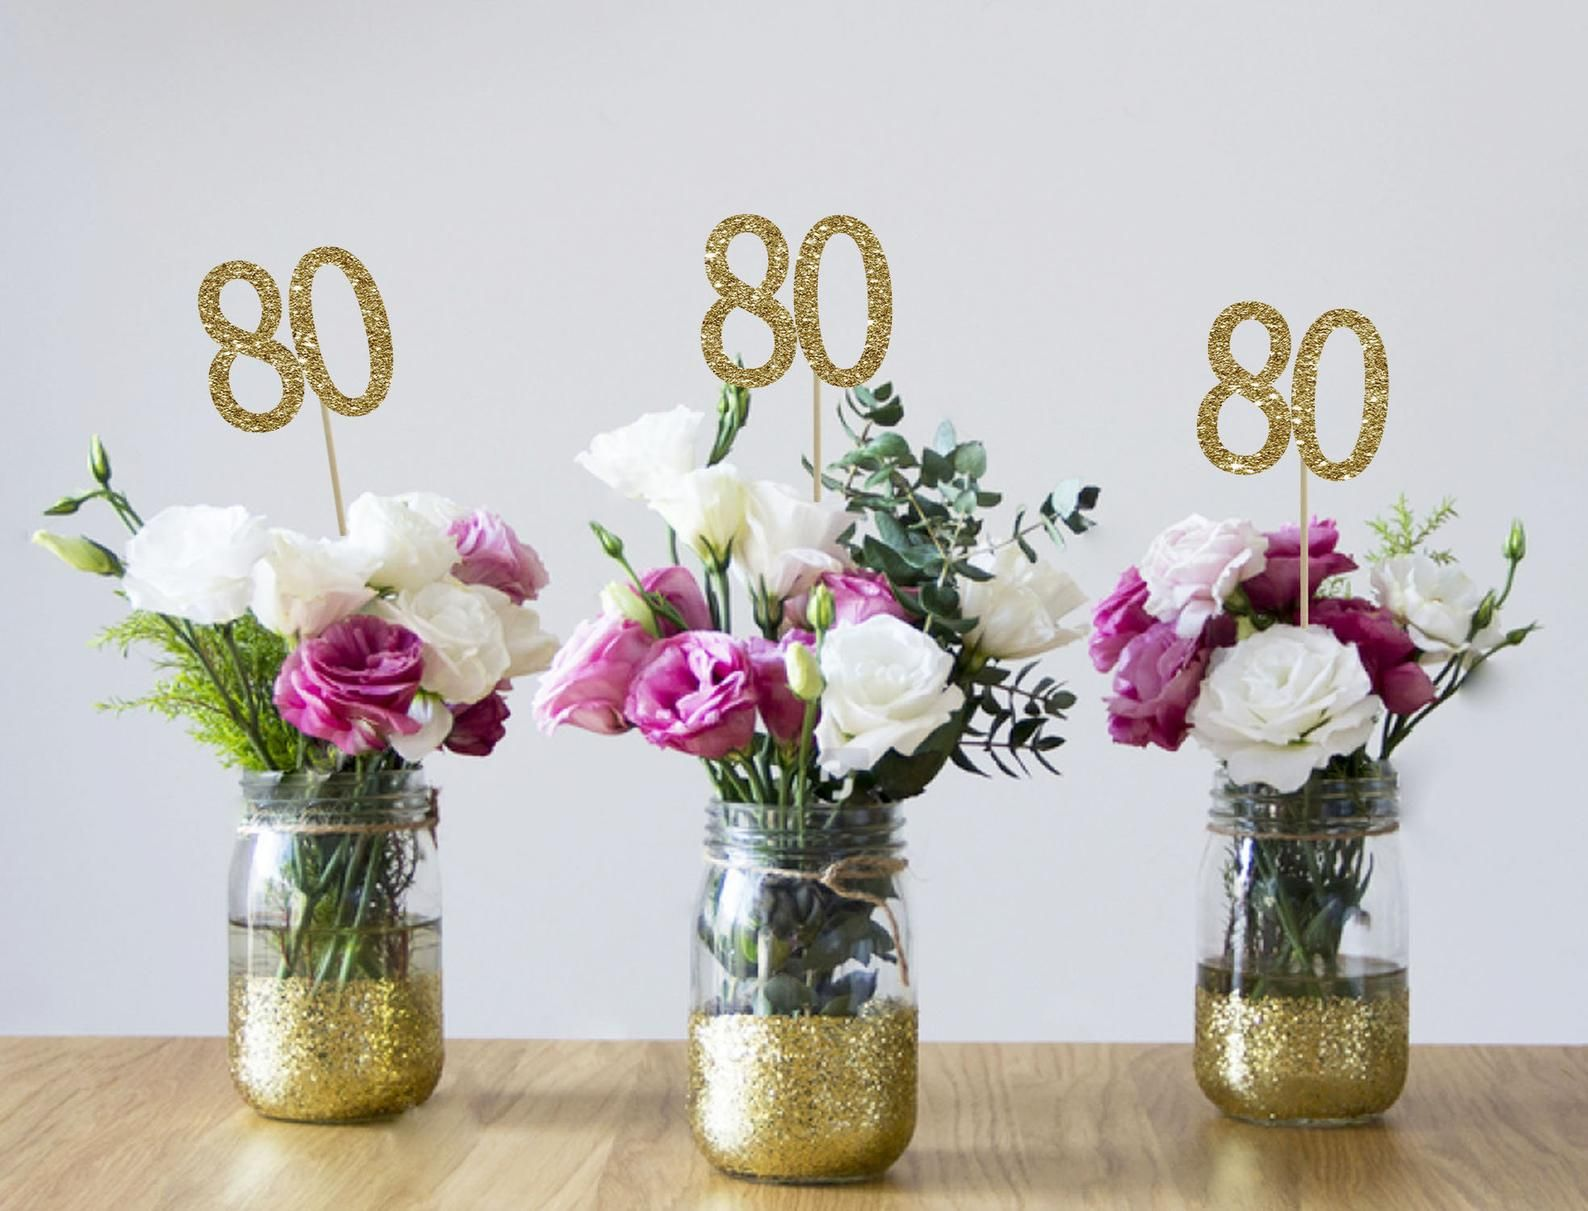 80th Birthday Centerpieces 80th Centerpieces 80th Birthday Party 80th Birthday Decor Gold 80th Birthday Party Decorations 80th Party Decor In 2020 50th Birthday Centerpieces 60th Birthday Centerpieces 30th Birthday Party Decorations